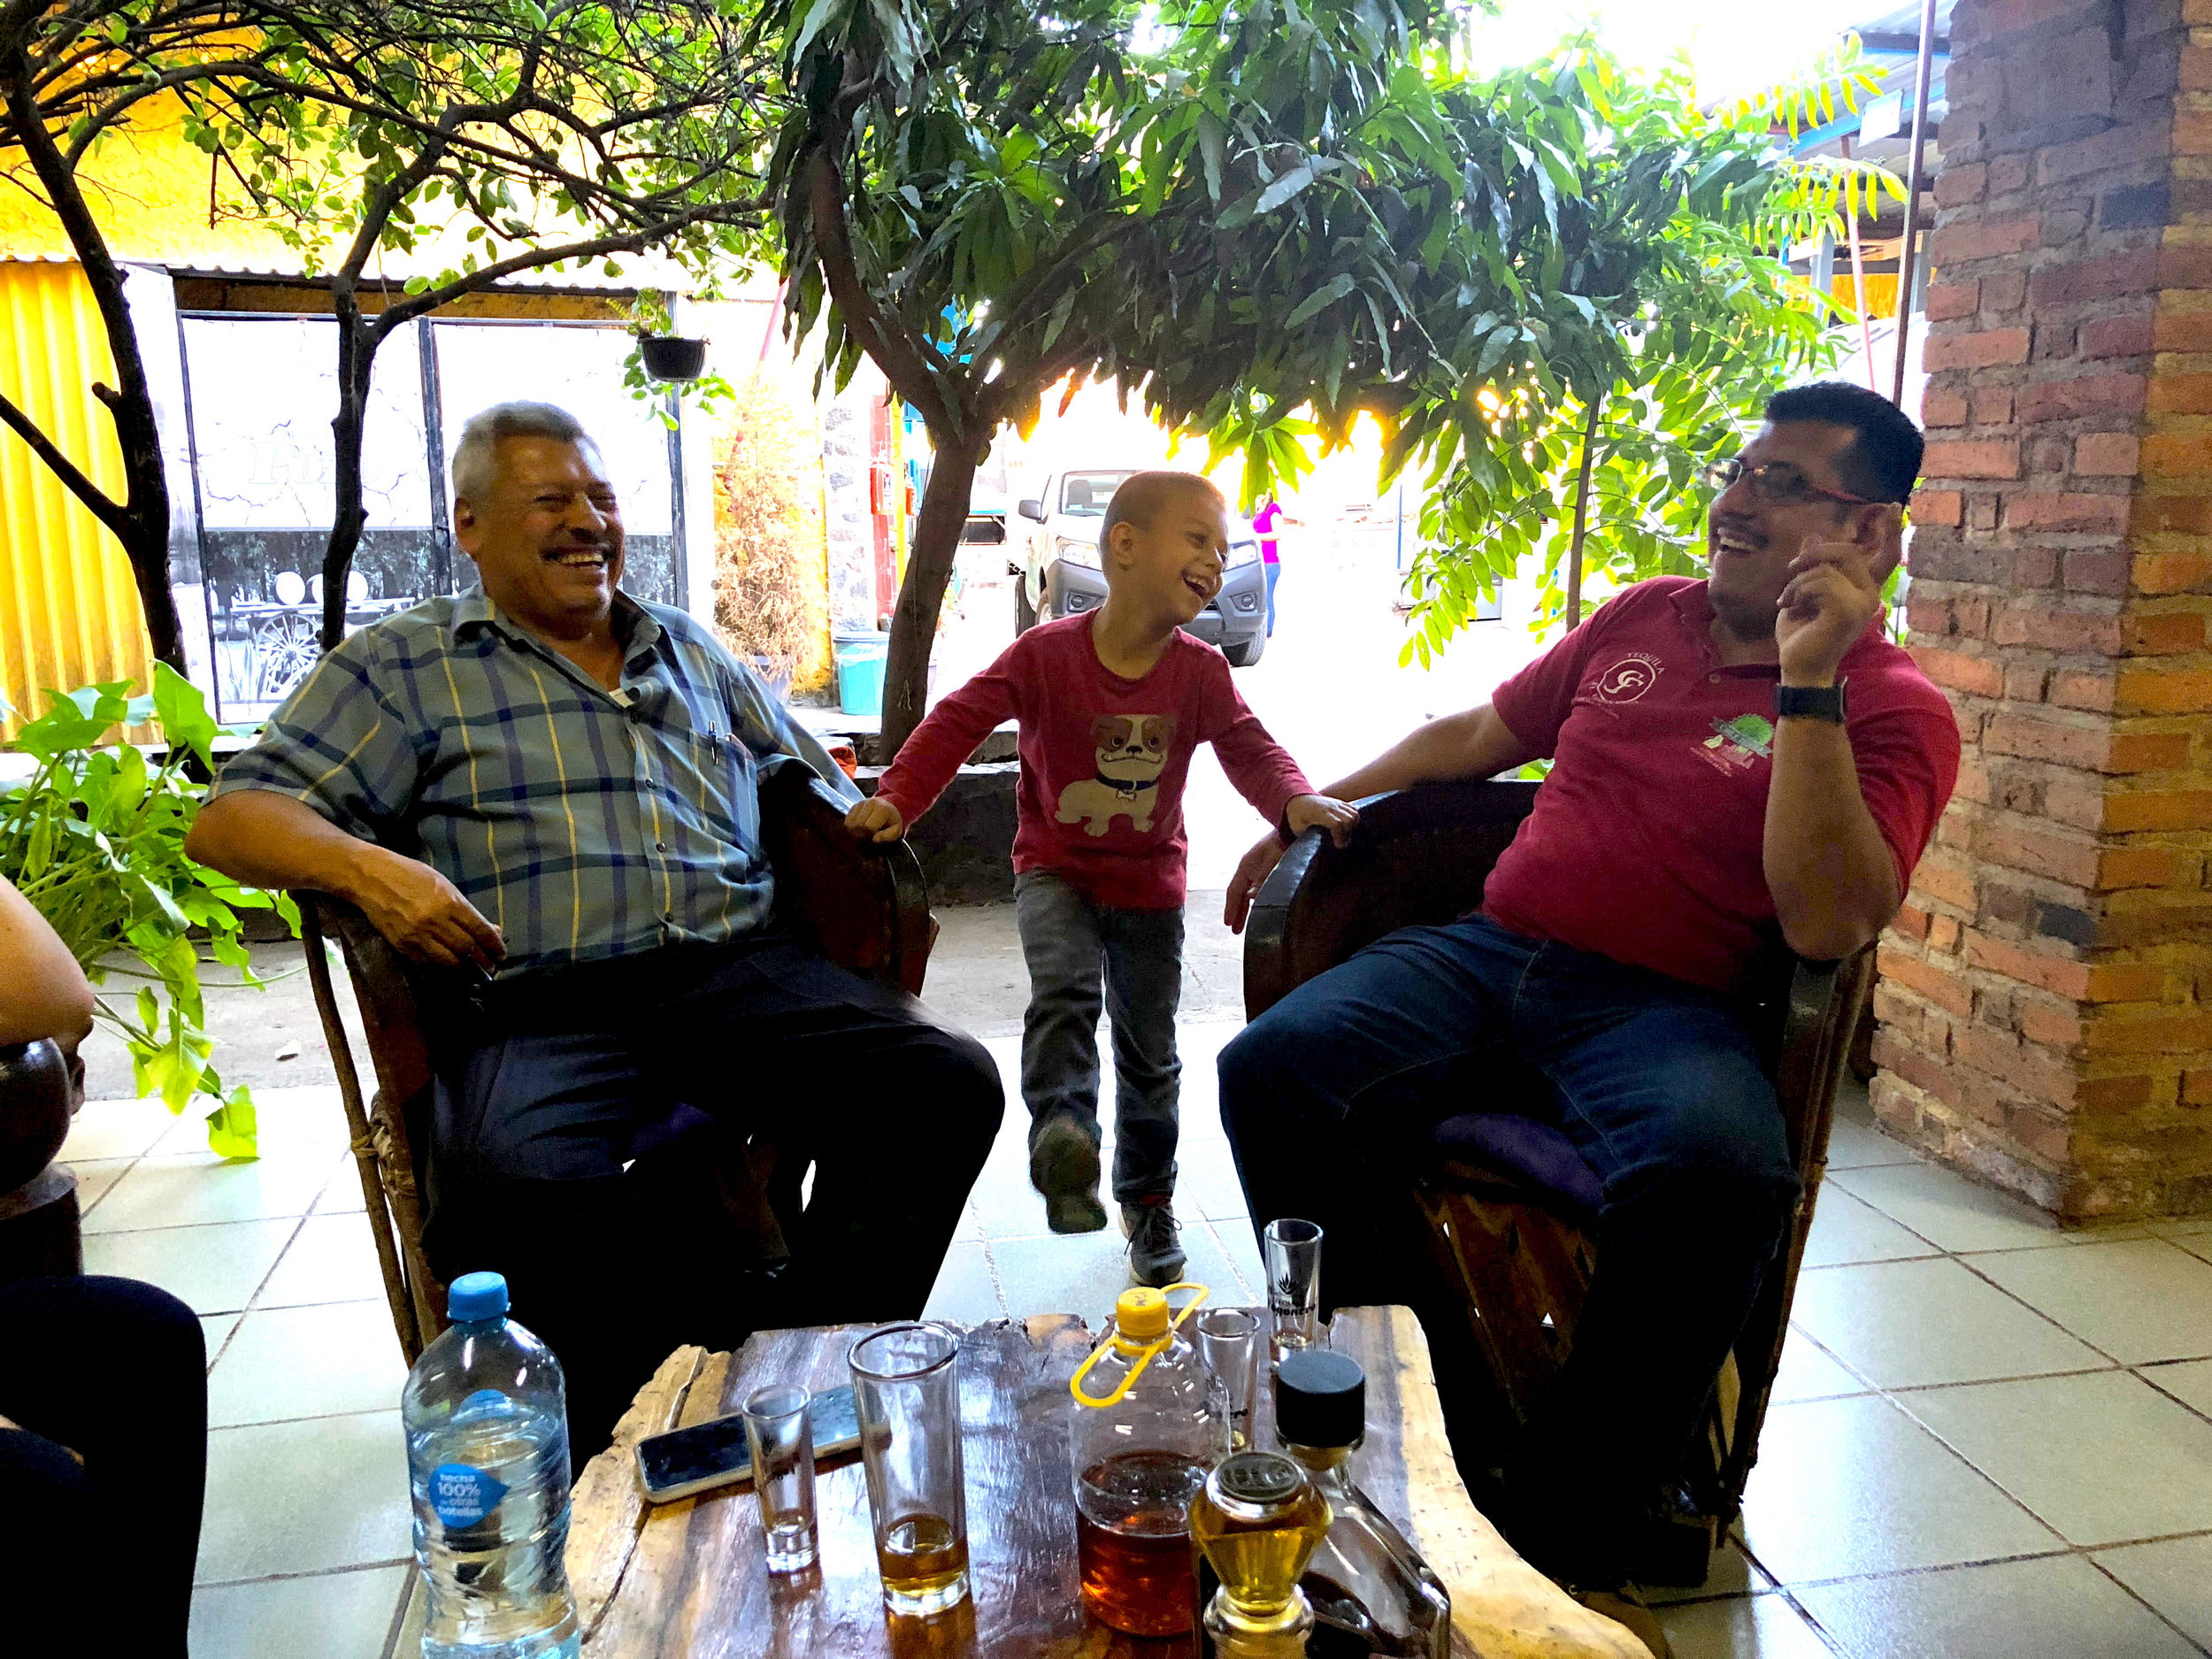 Three generations of the Correa family laughing and having fun at their small tequila distillery in Amatitan